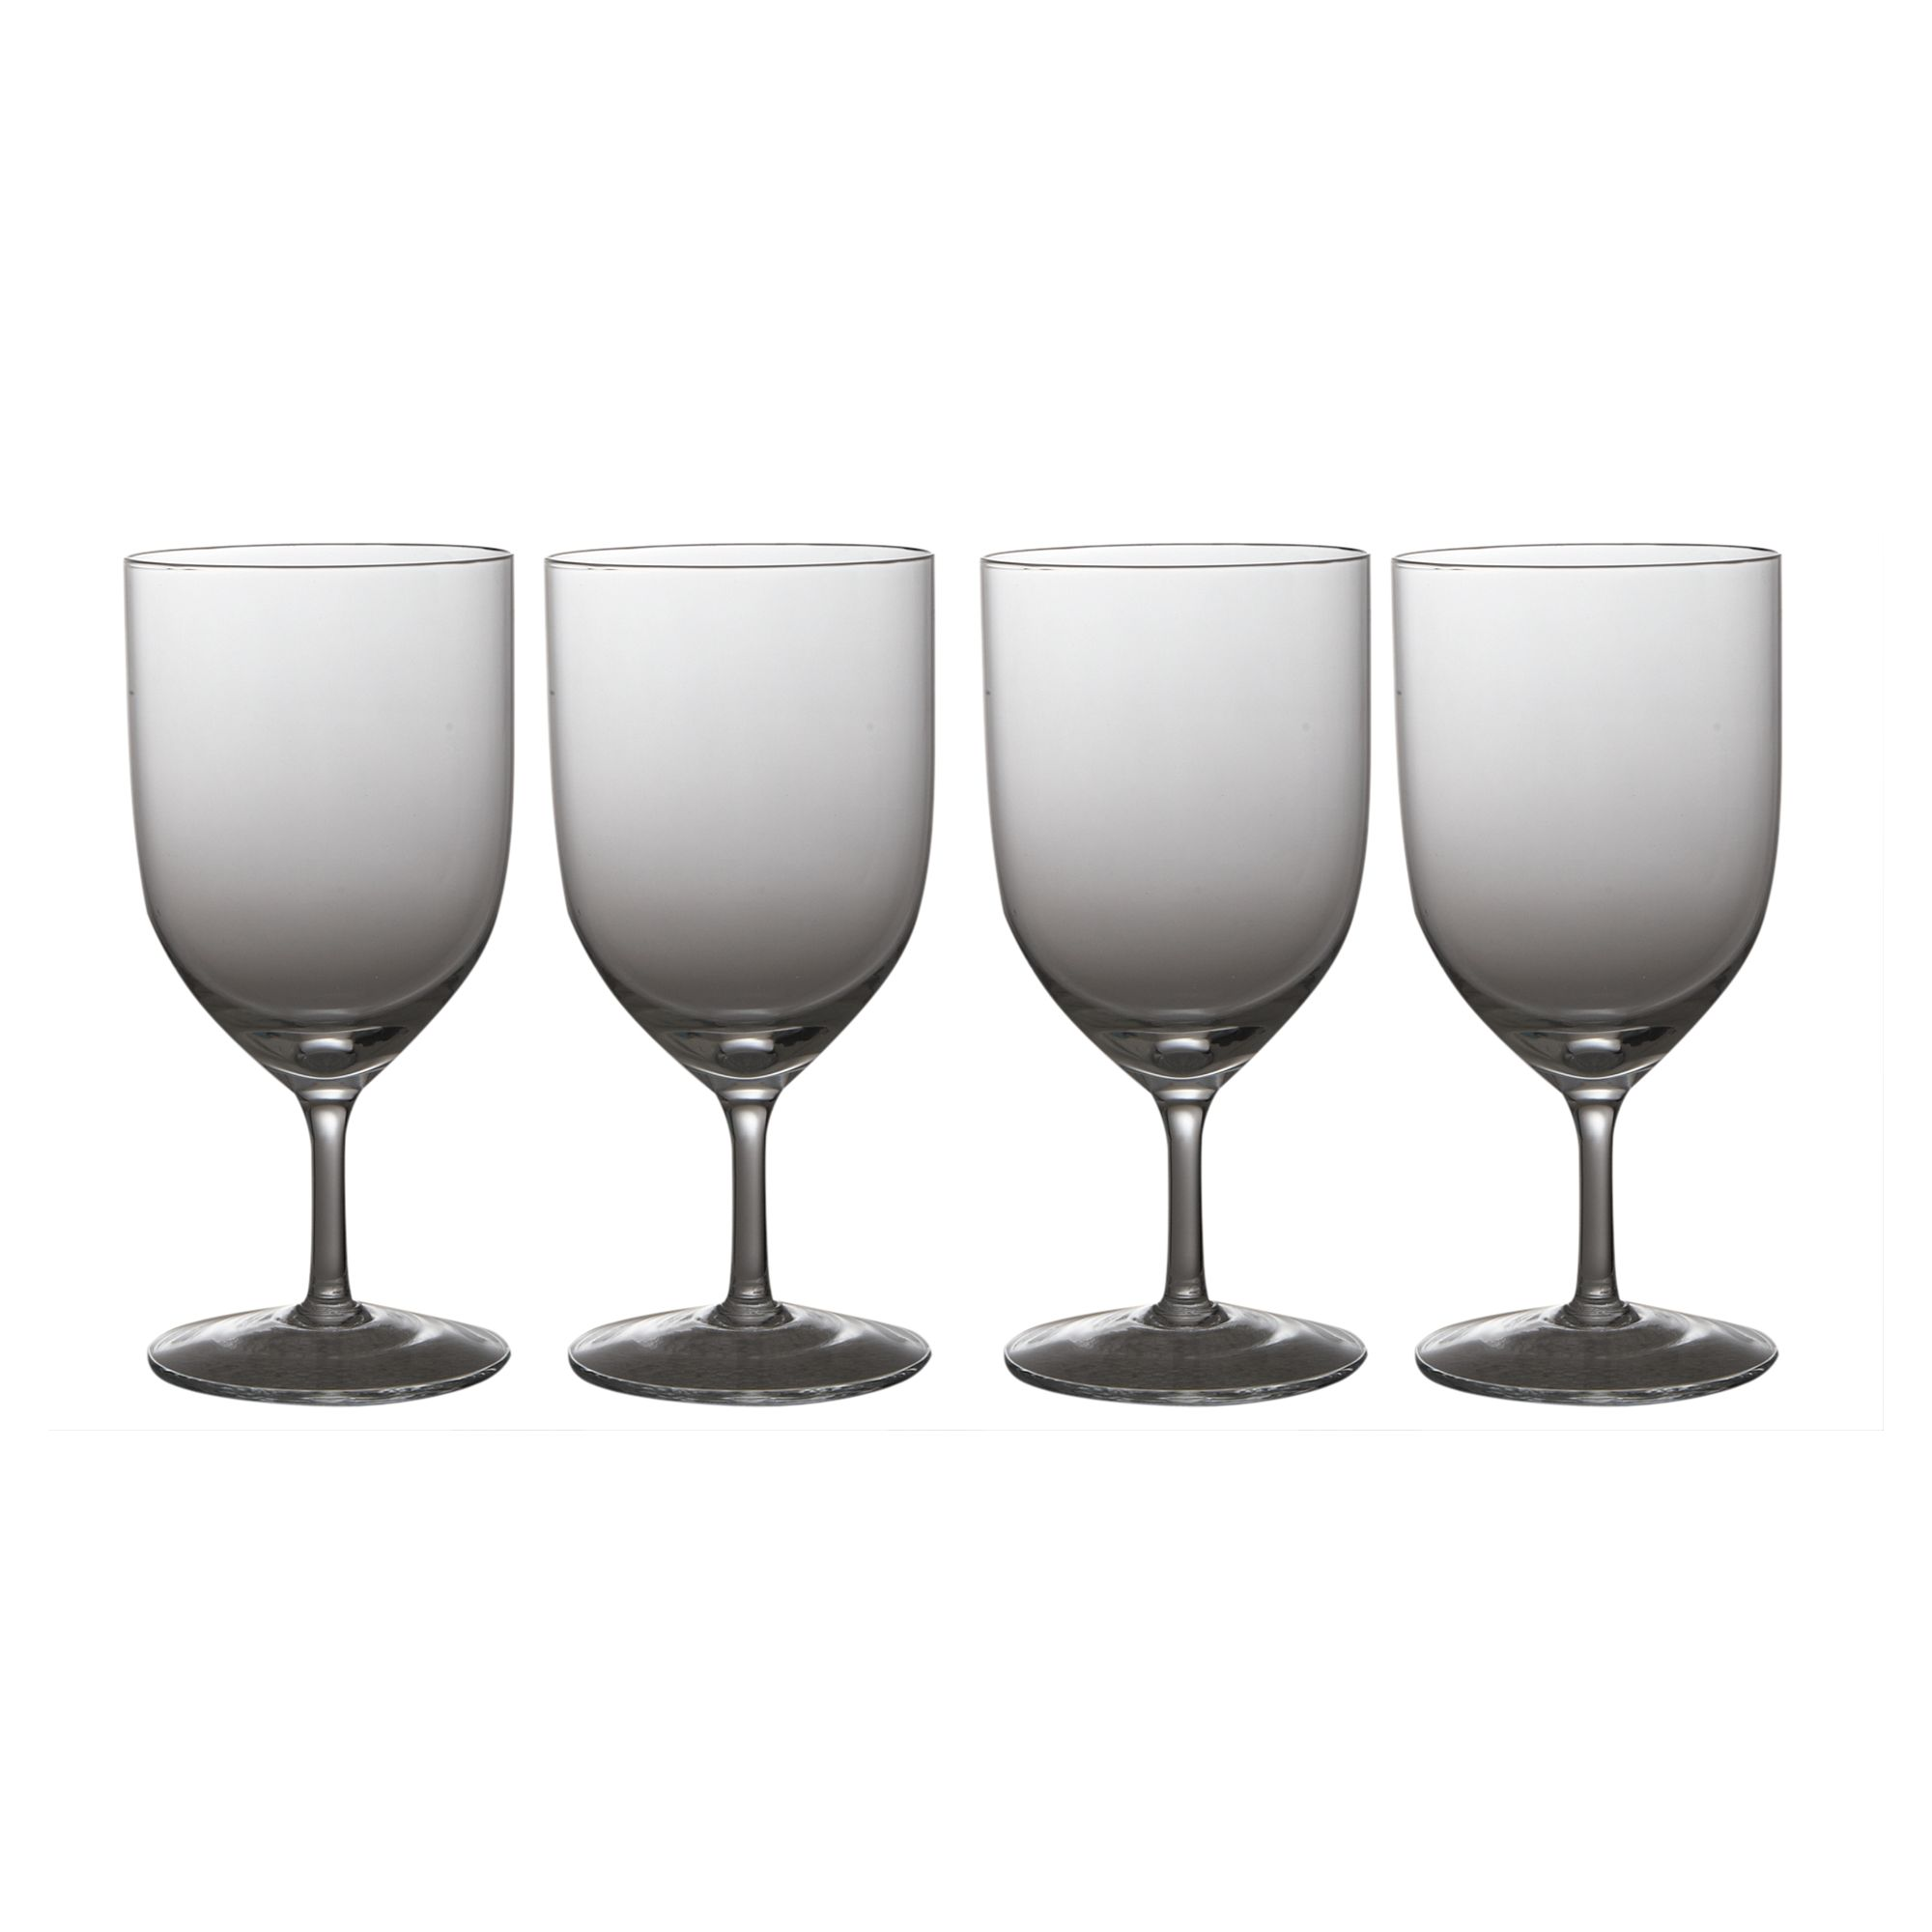 Wine collection water glasses, set of 4